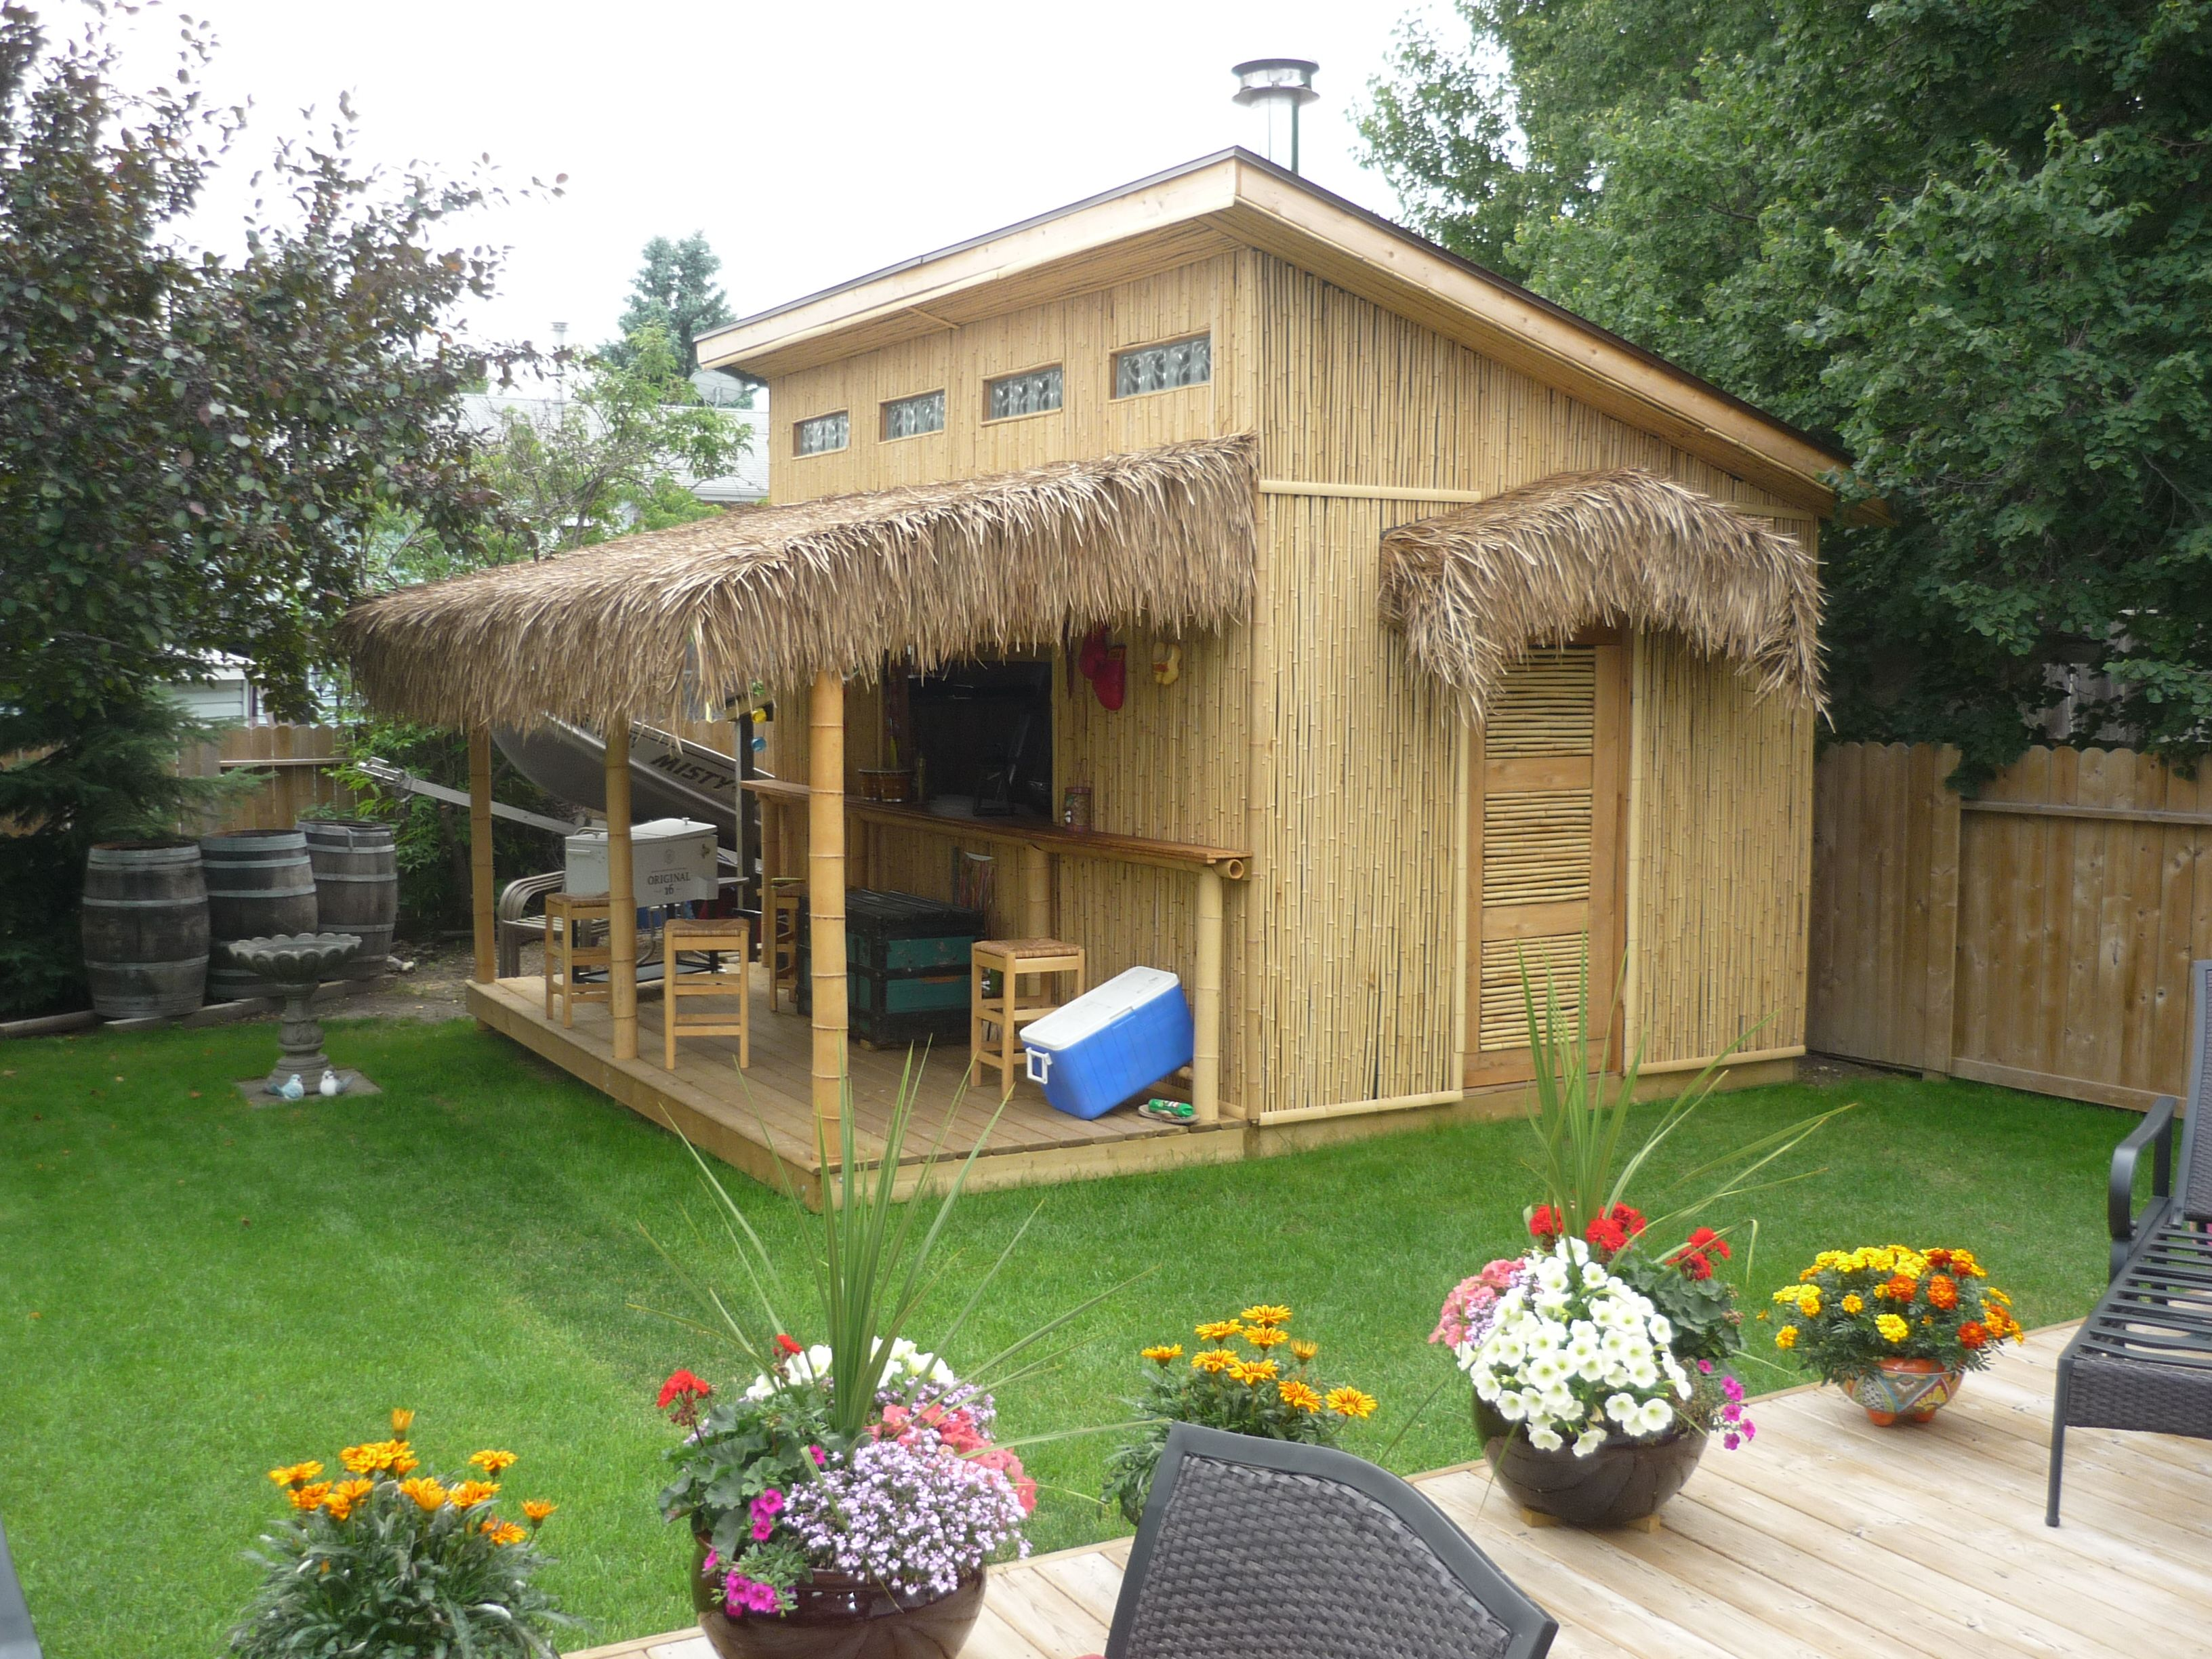 Tiki bar party sheds pinterest tiki bars bar and for Outdoor kitchen shed